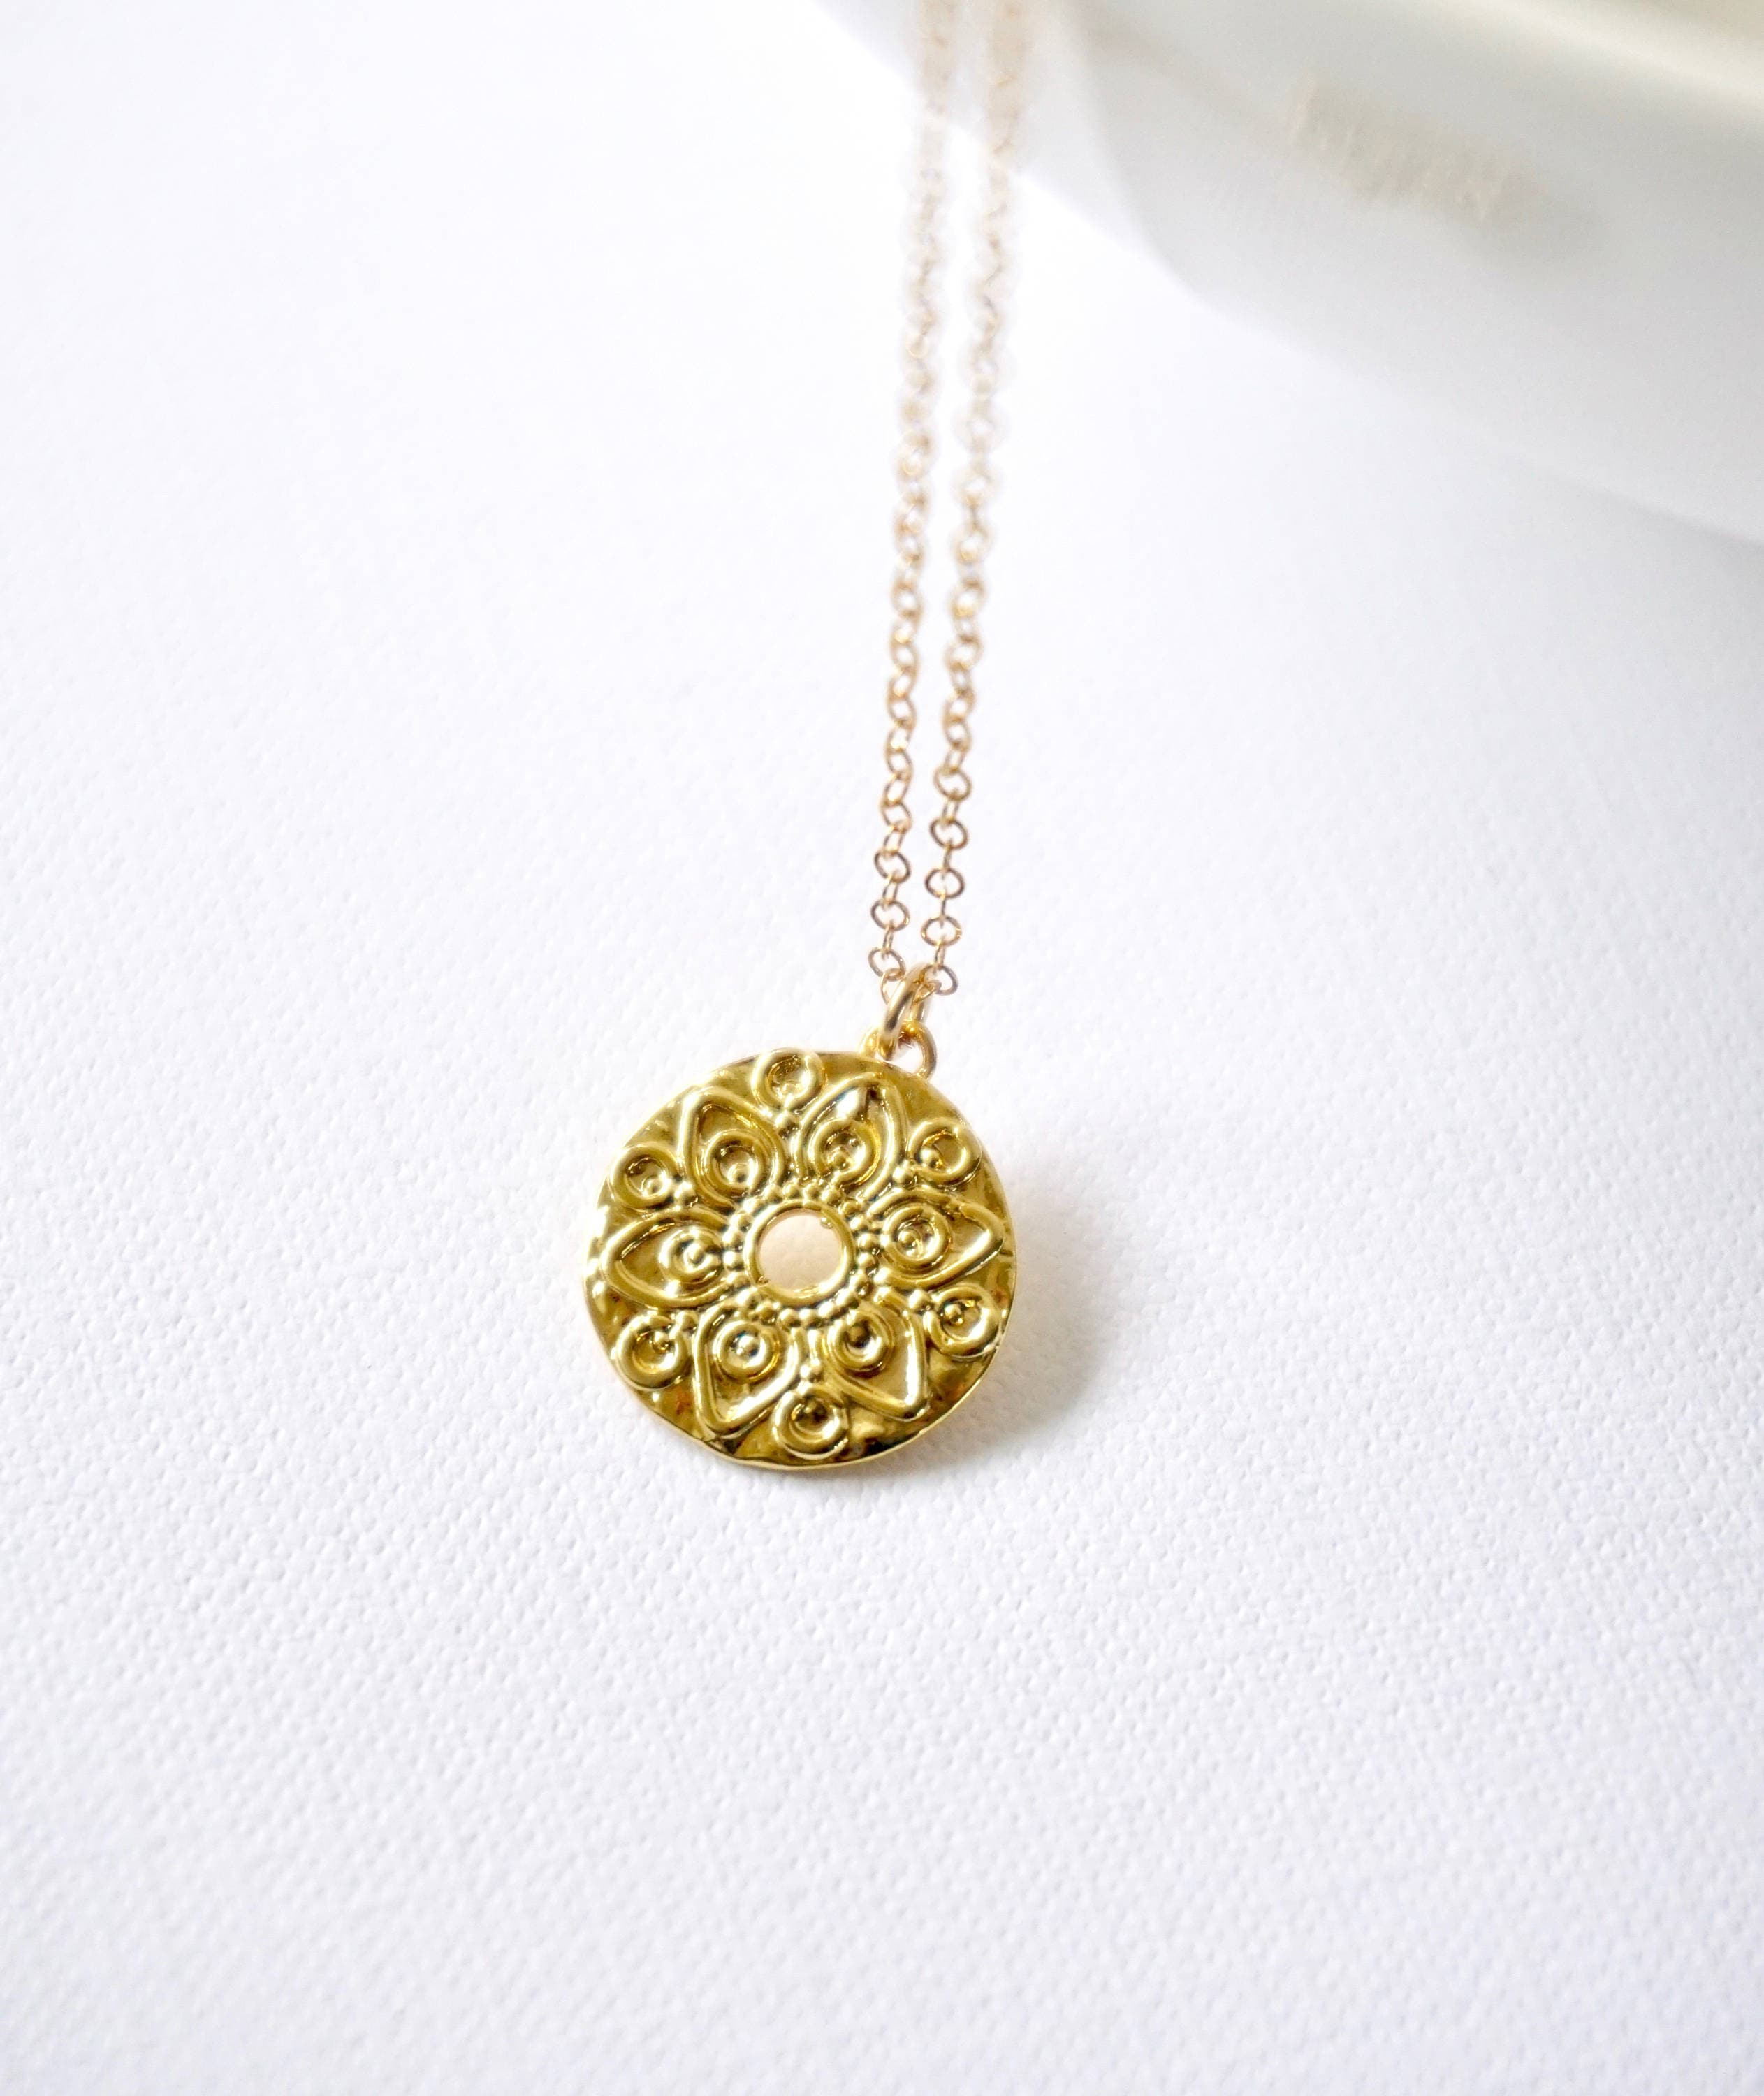 chain item gold with iron medallion ancient silver coin necklace wrought b